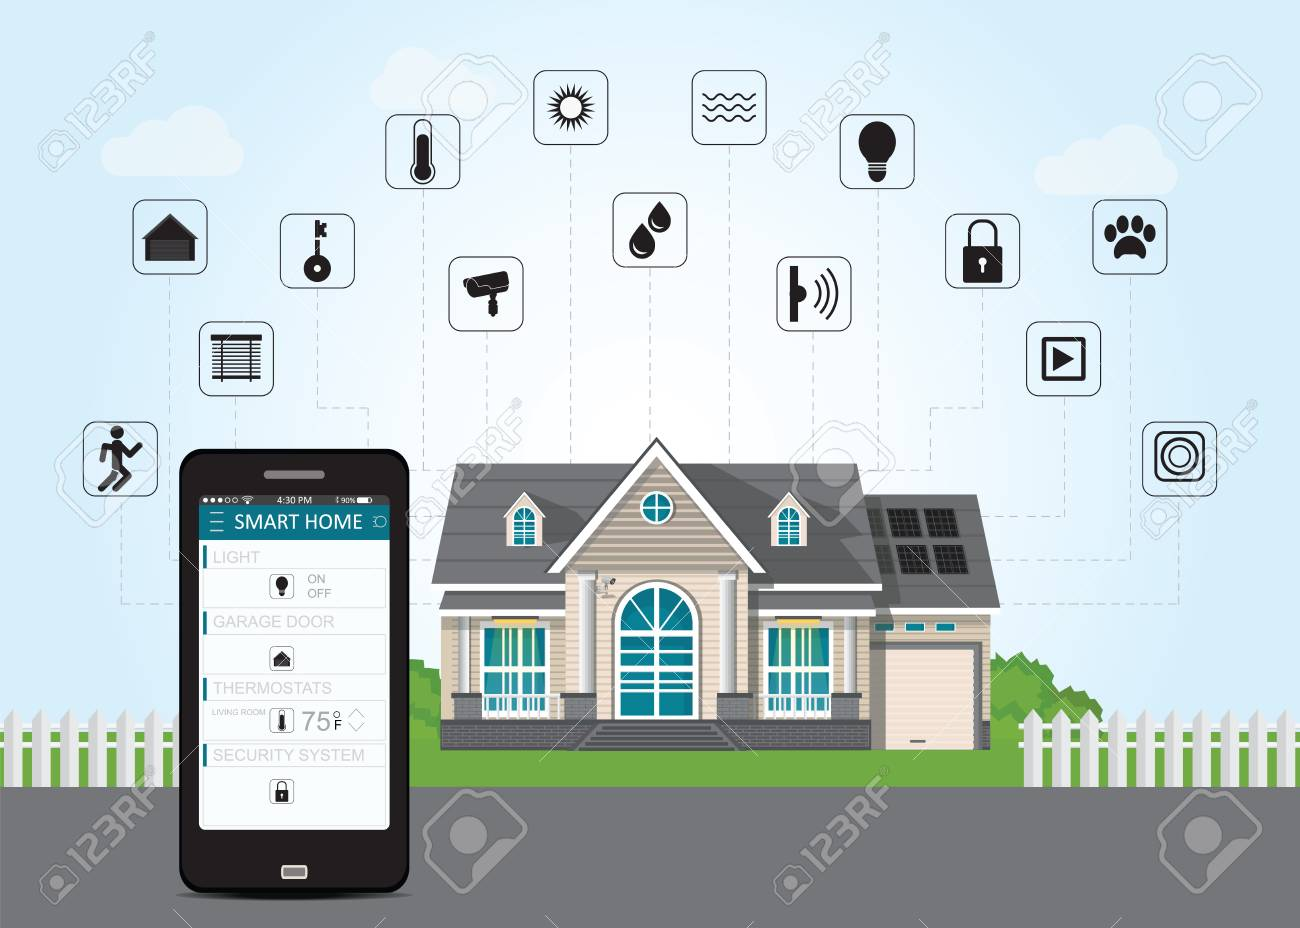 Smart Home With Smart Phone Technology Conceptual System With ...